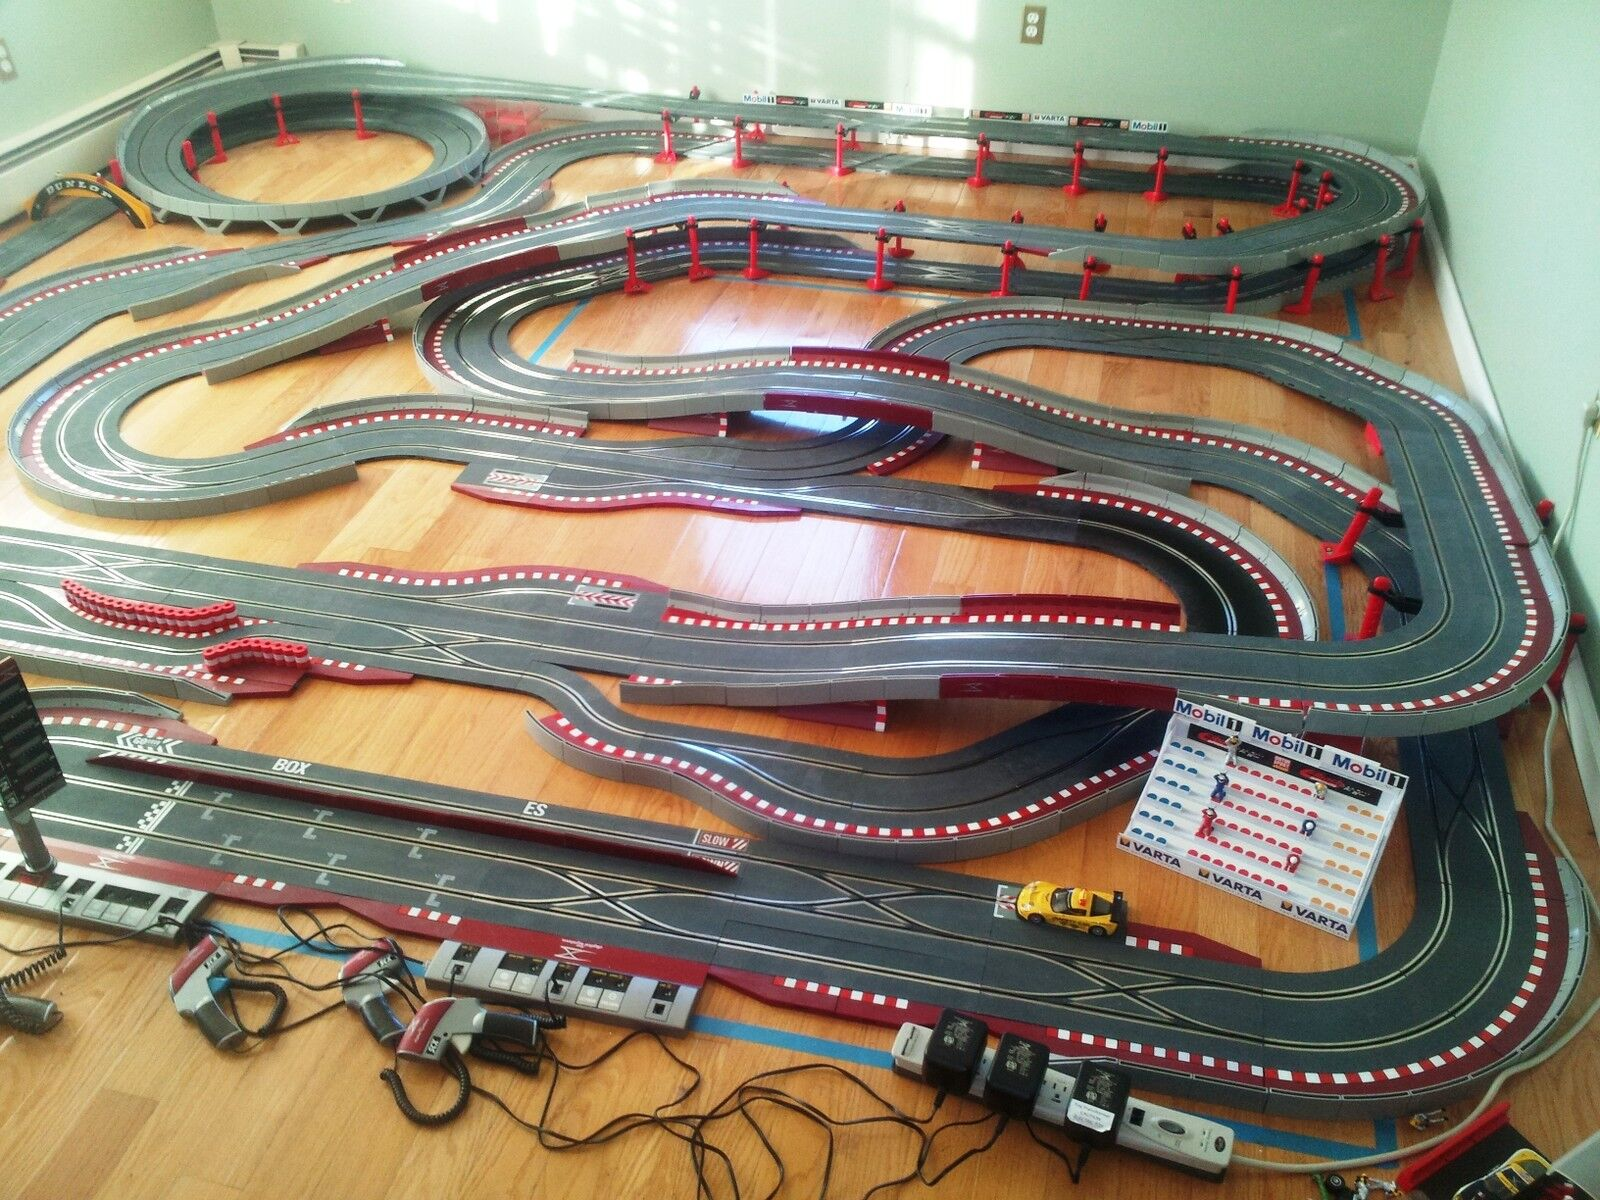 PB&J Slot Cars, LLC